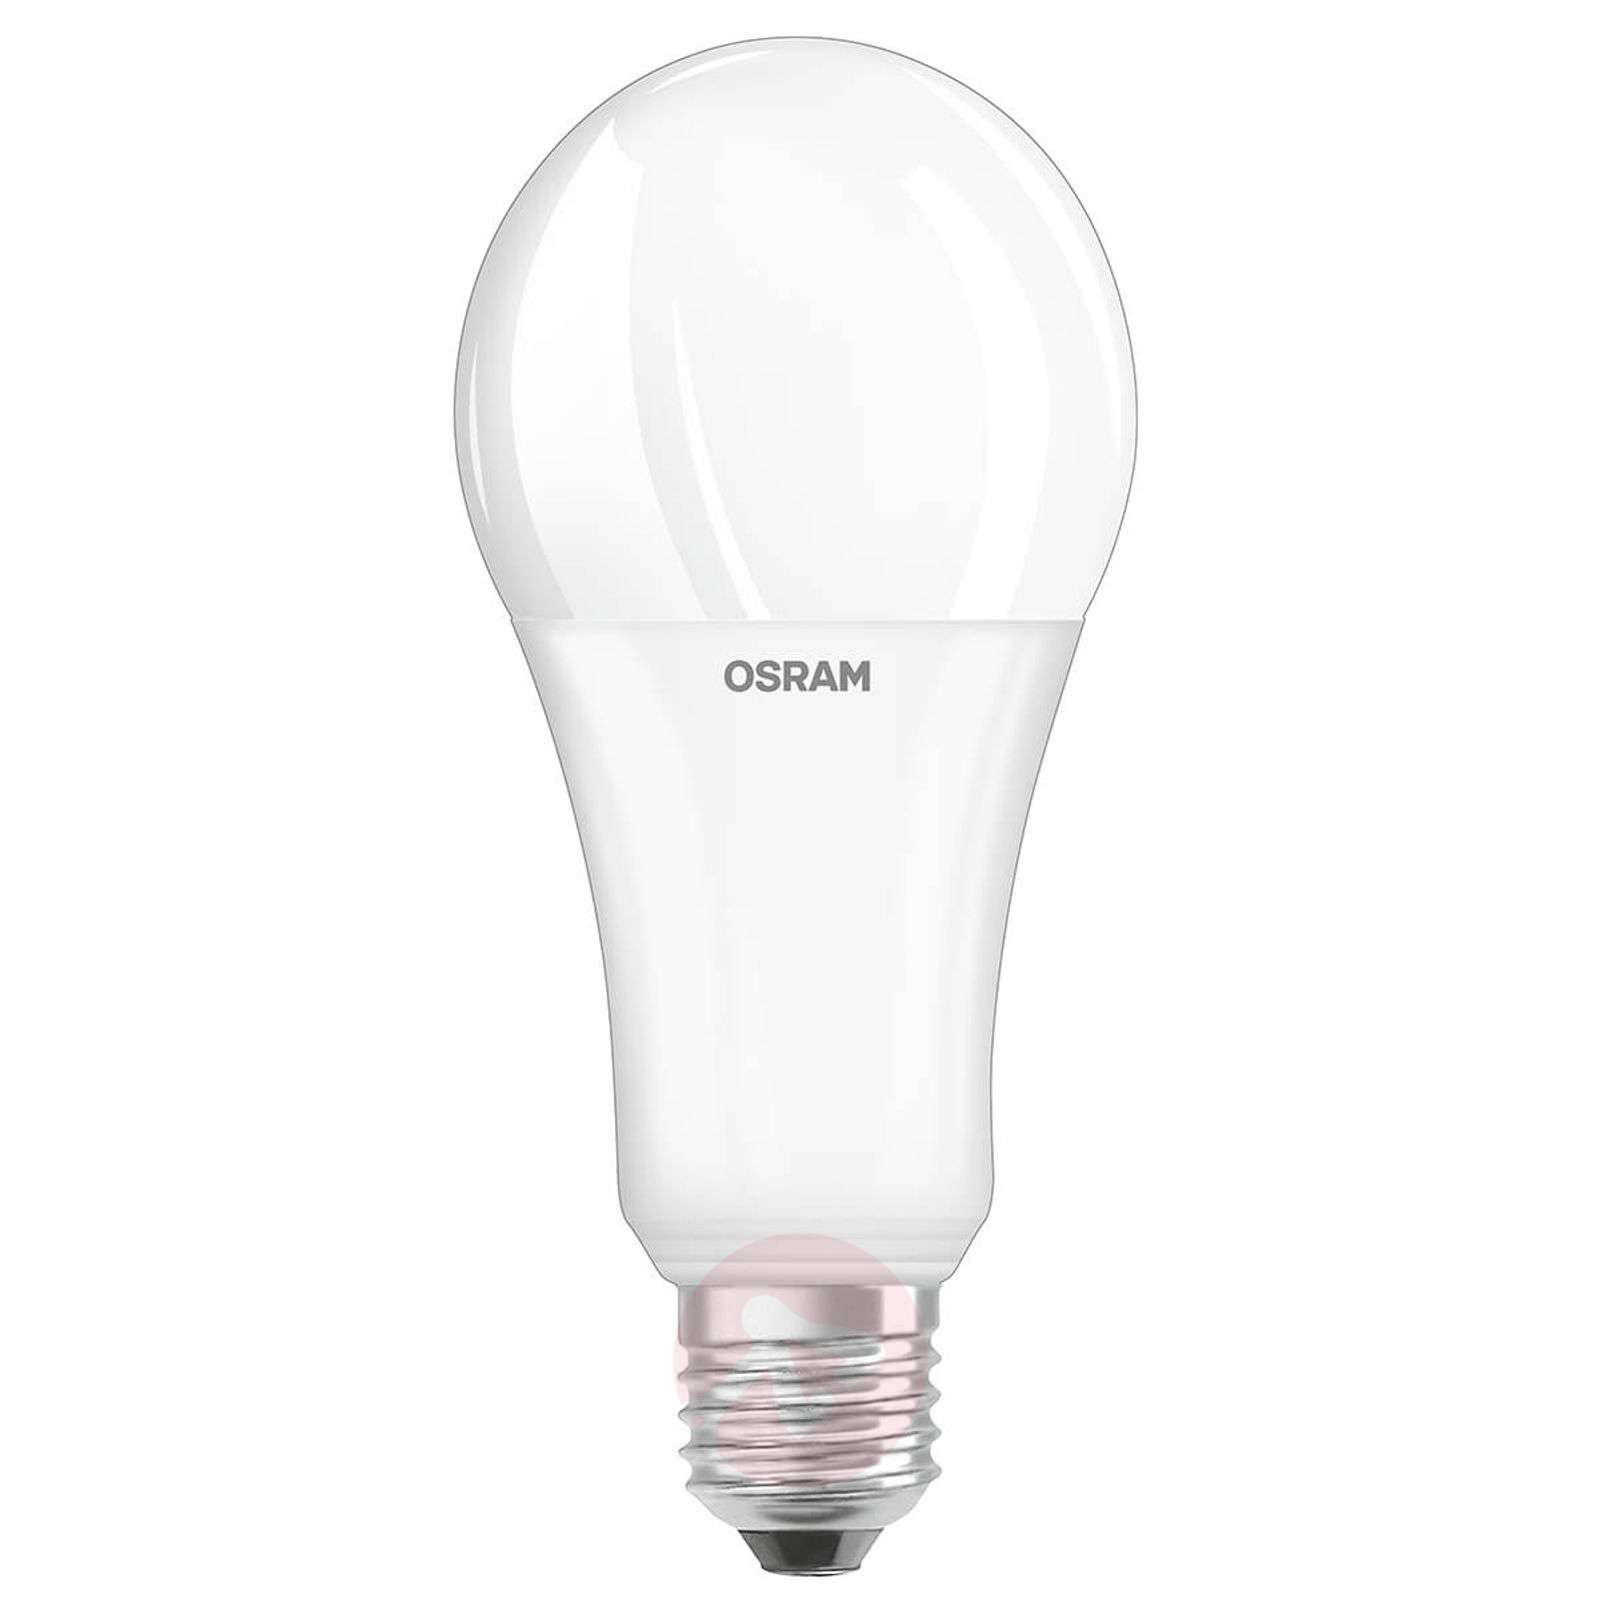 500lm Led Chaud2 21wBlanc dimmable E27 Ampoule xeEQBrWdoC